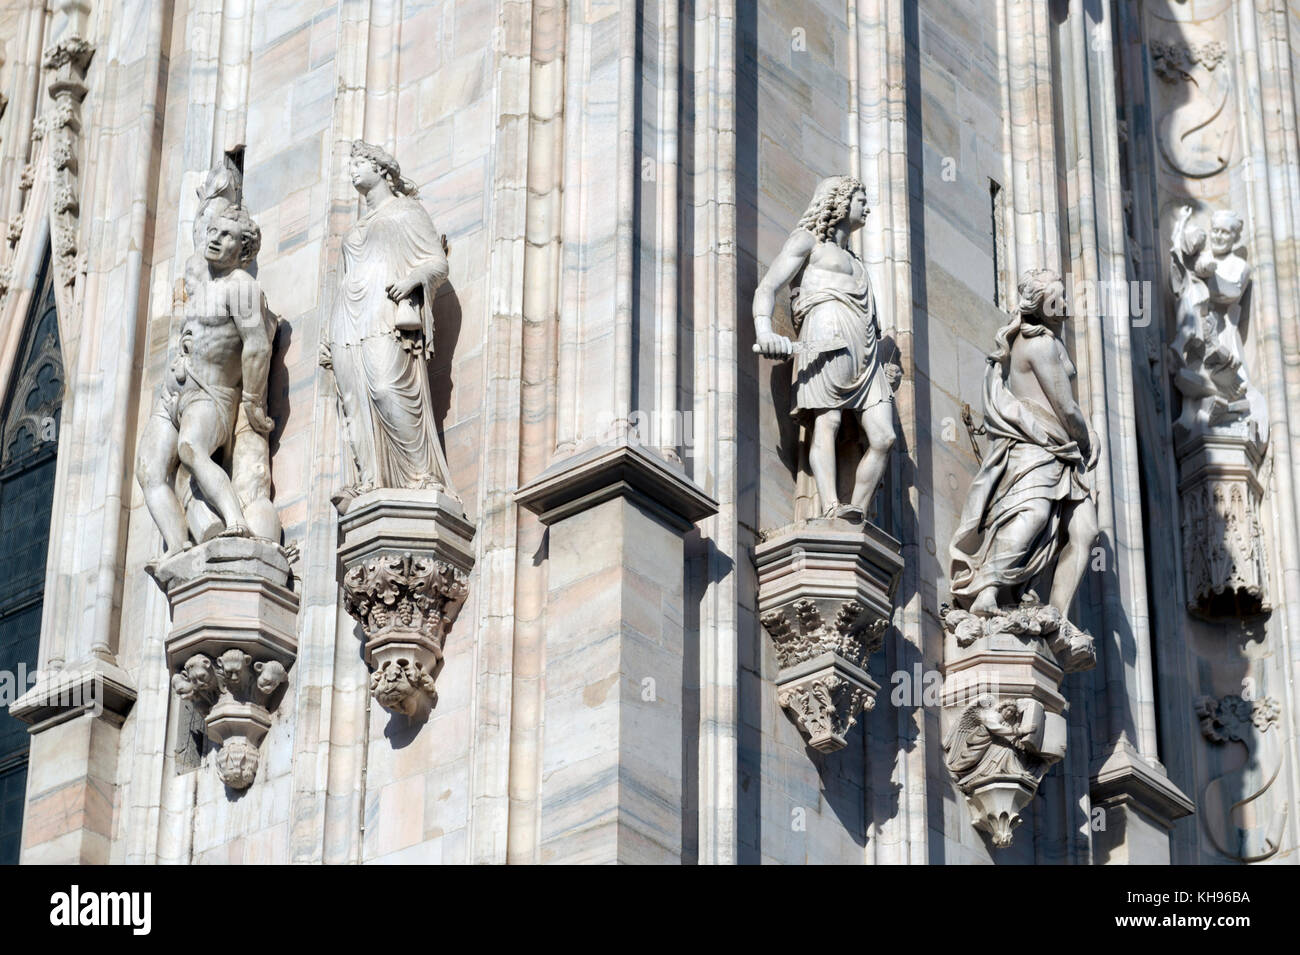 Italy. Lombardy. Milan Cathedral, Duomo di Milano, one of the largest churches in the world. Facade detail - Stock Image